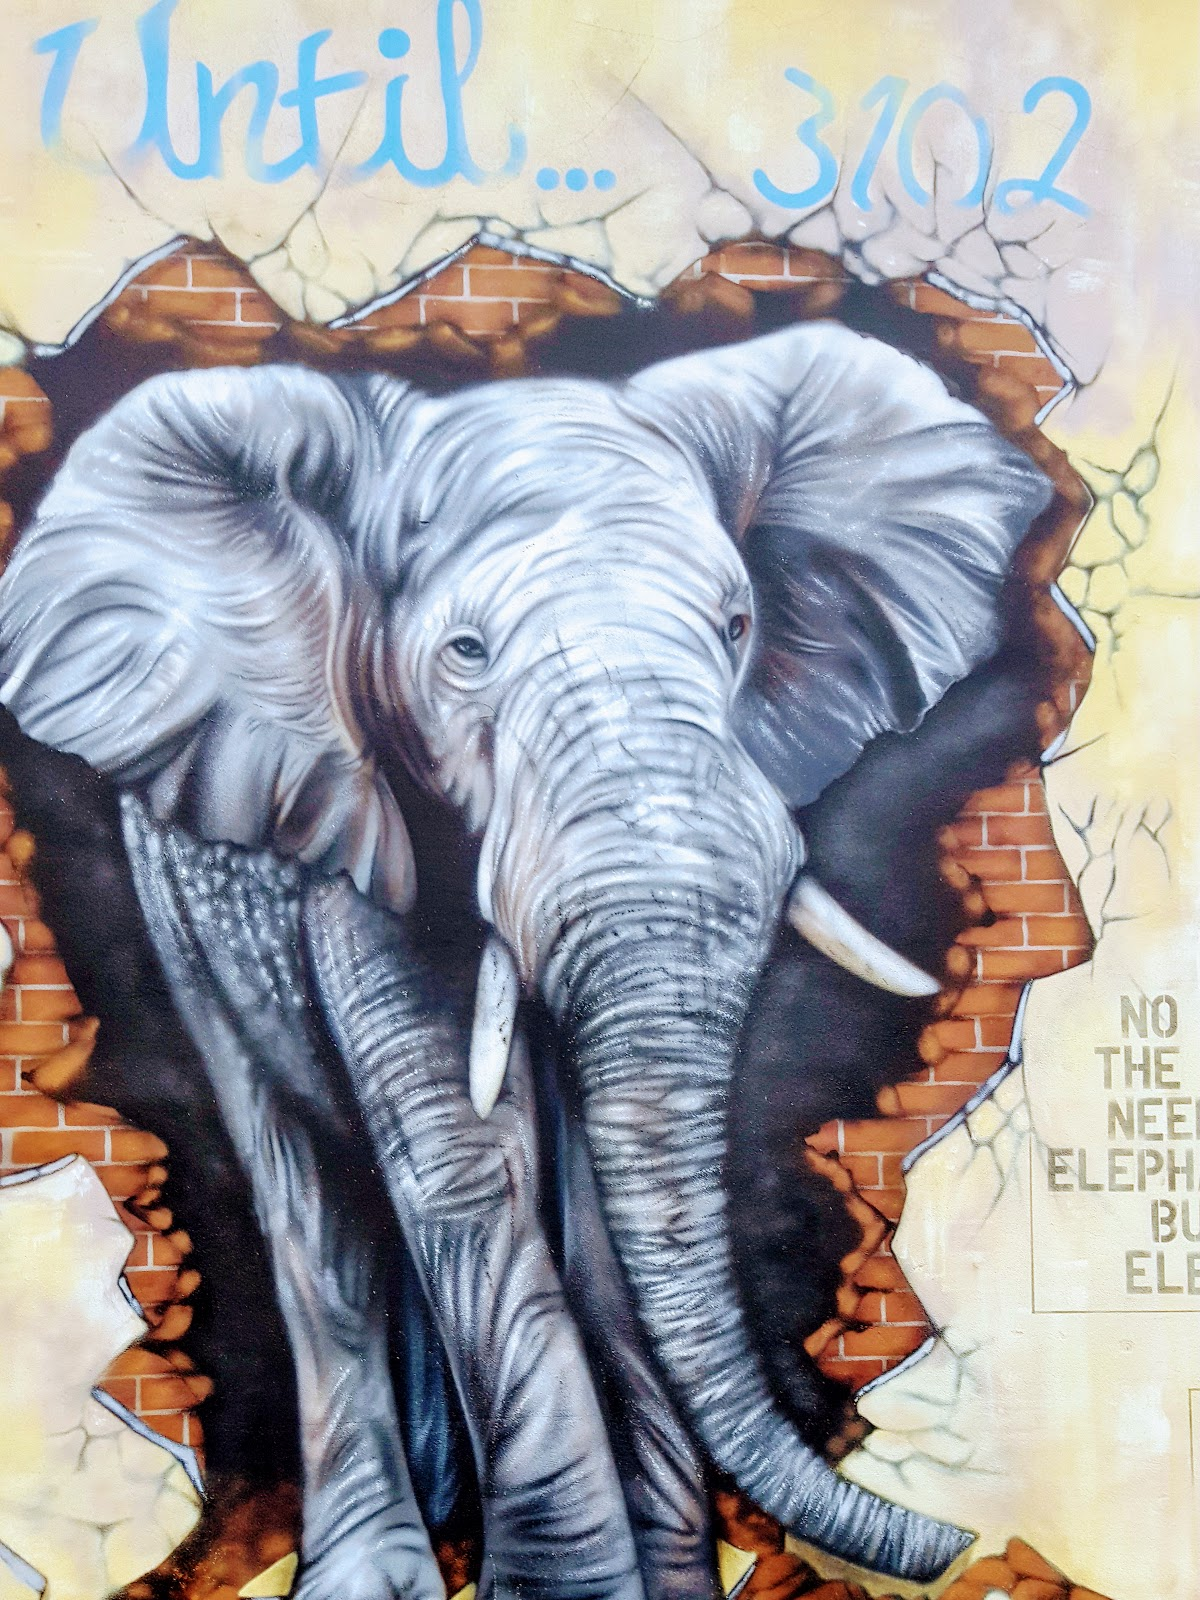 Giant Elephant Graffiti: Street Art In Loughborough